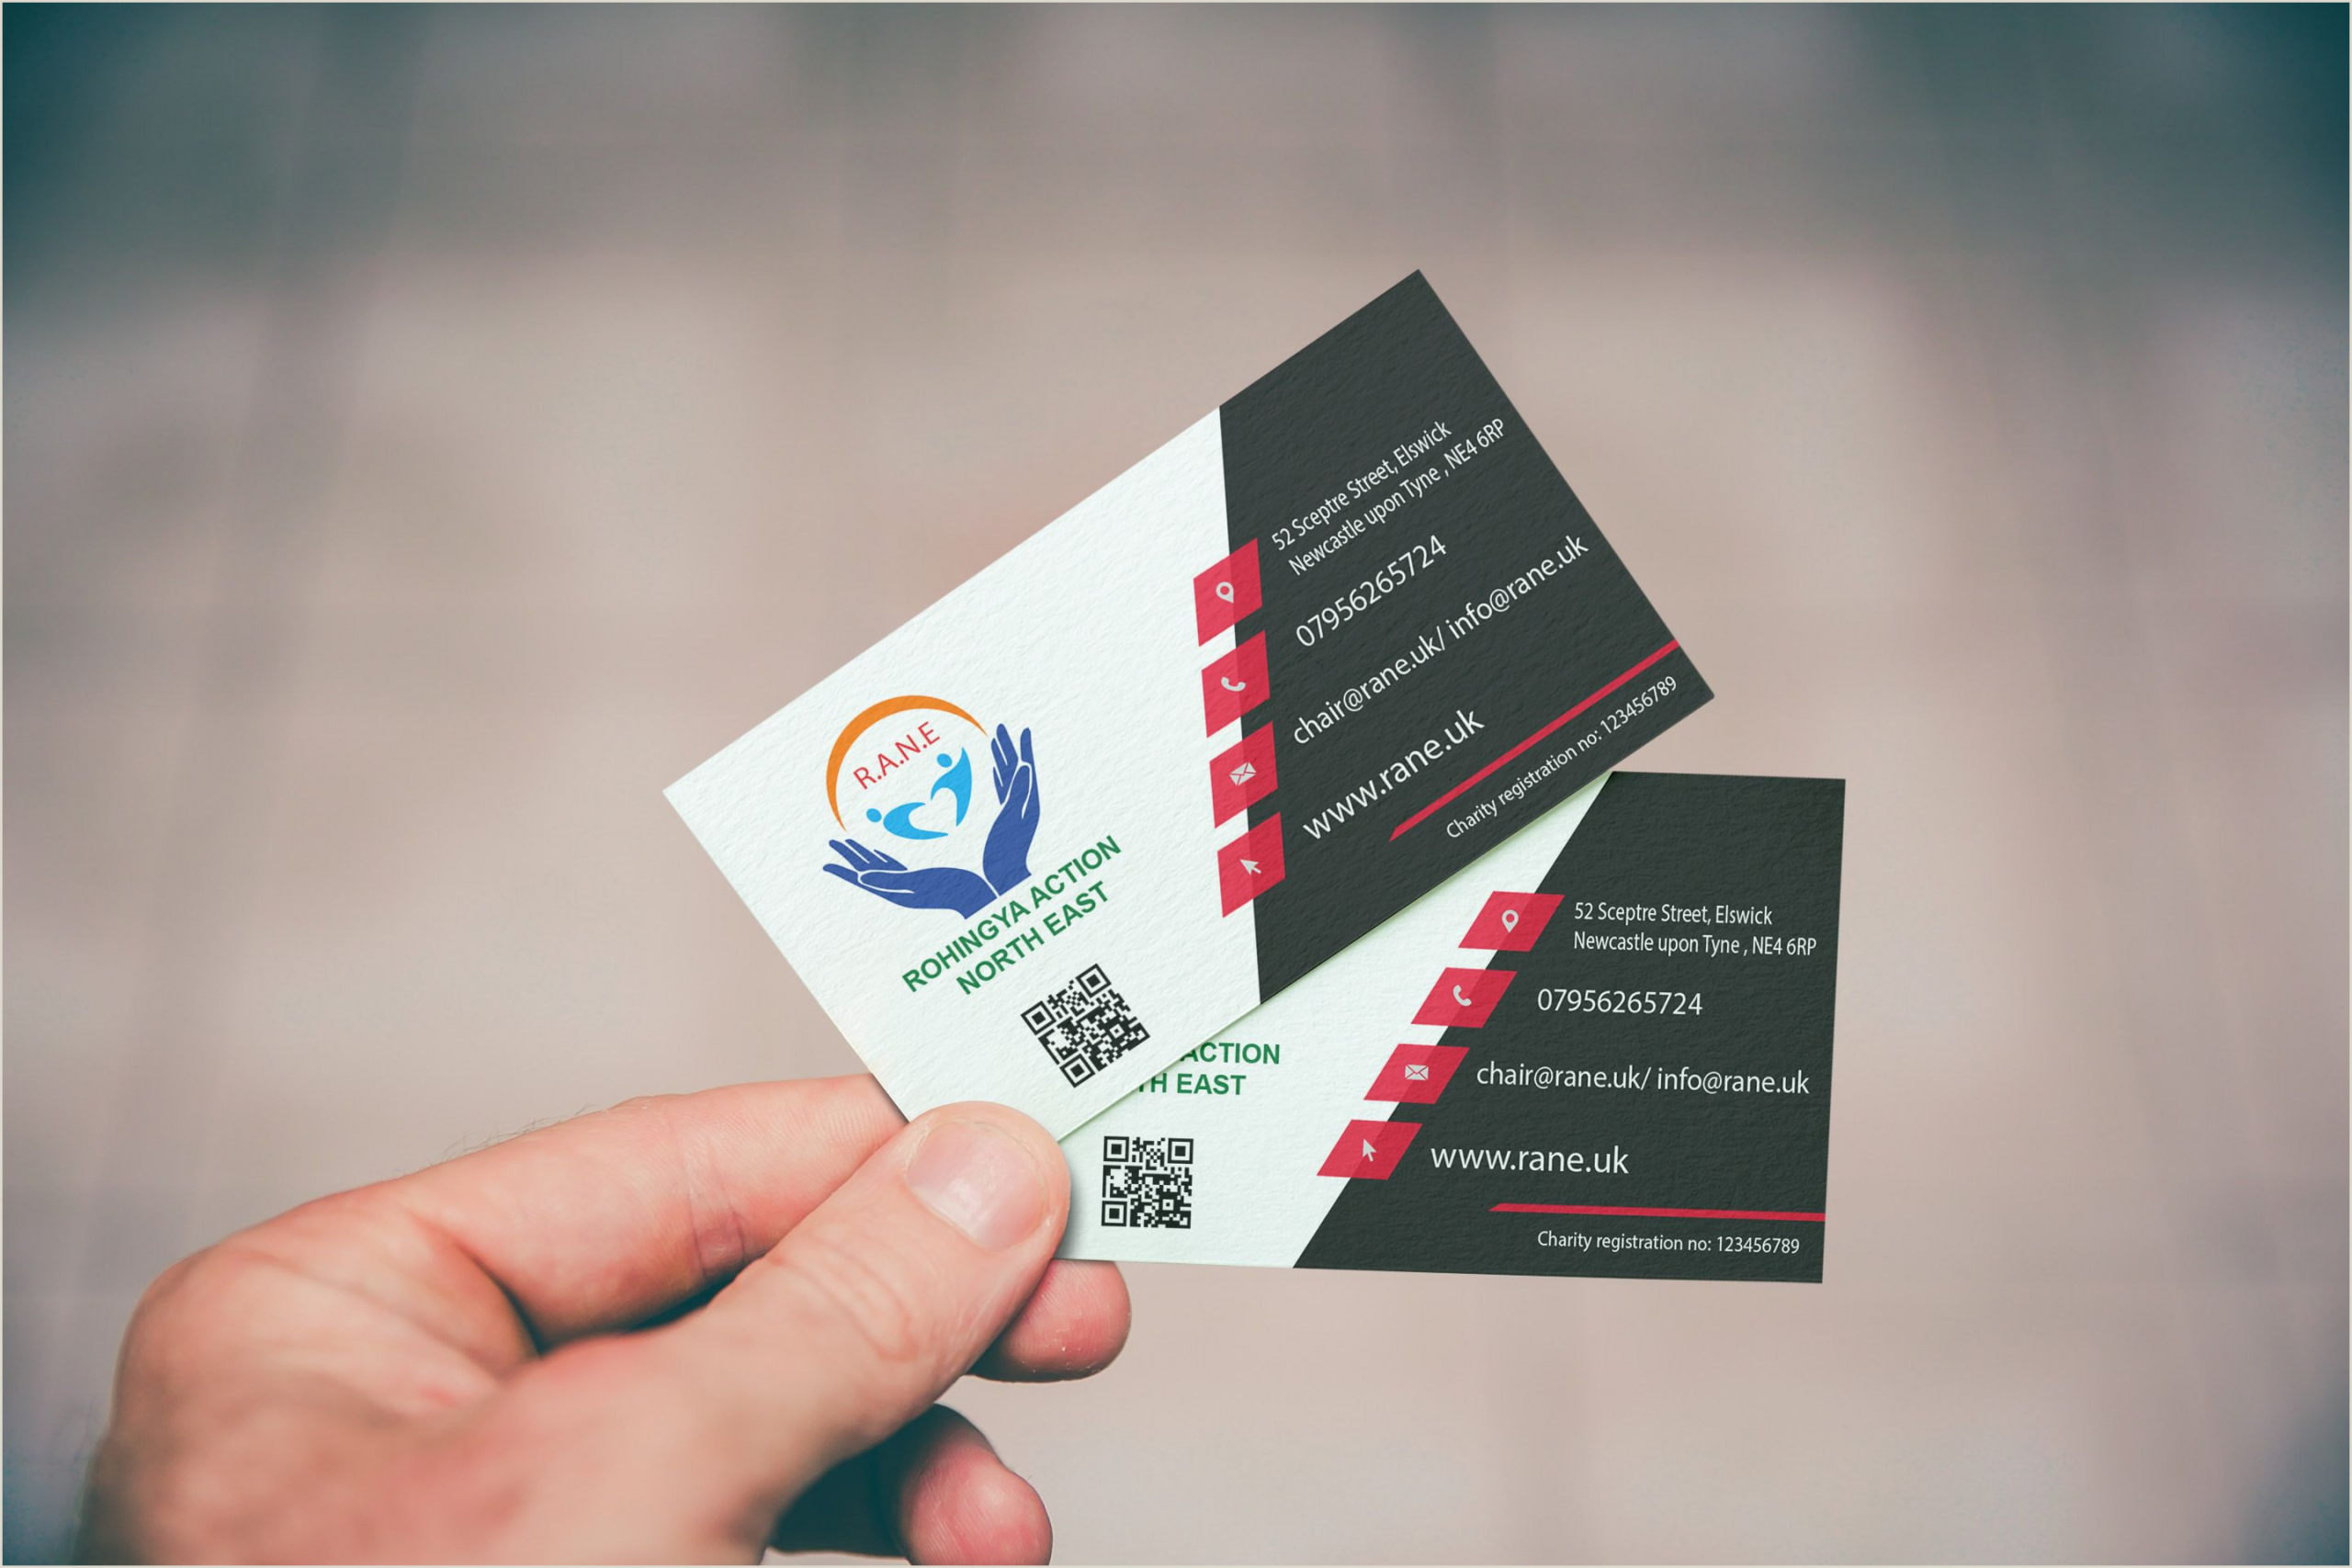 I Need To Make Business Cards Hi There I M A Professional Graphic Designer I Have 4